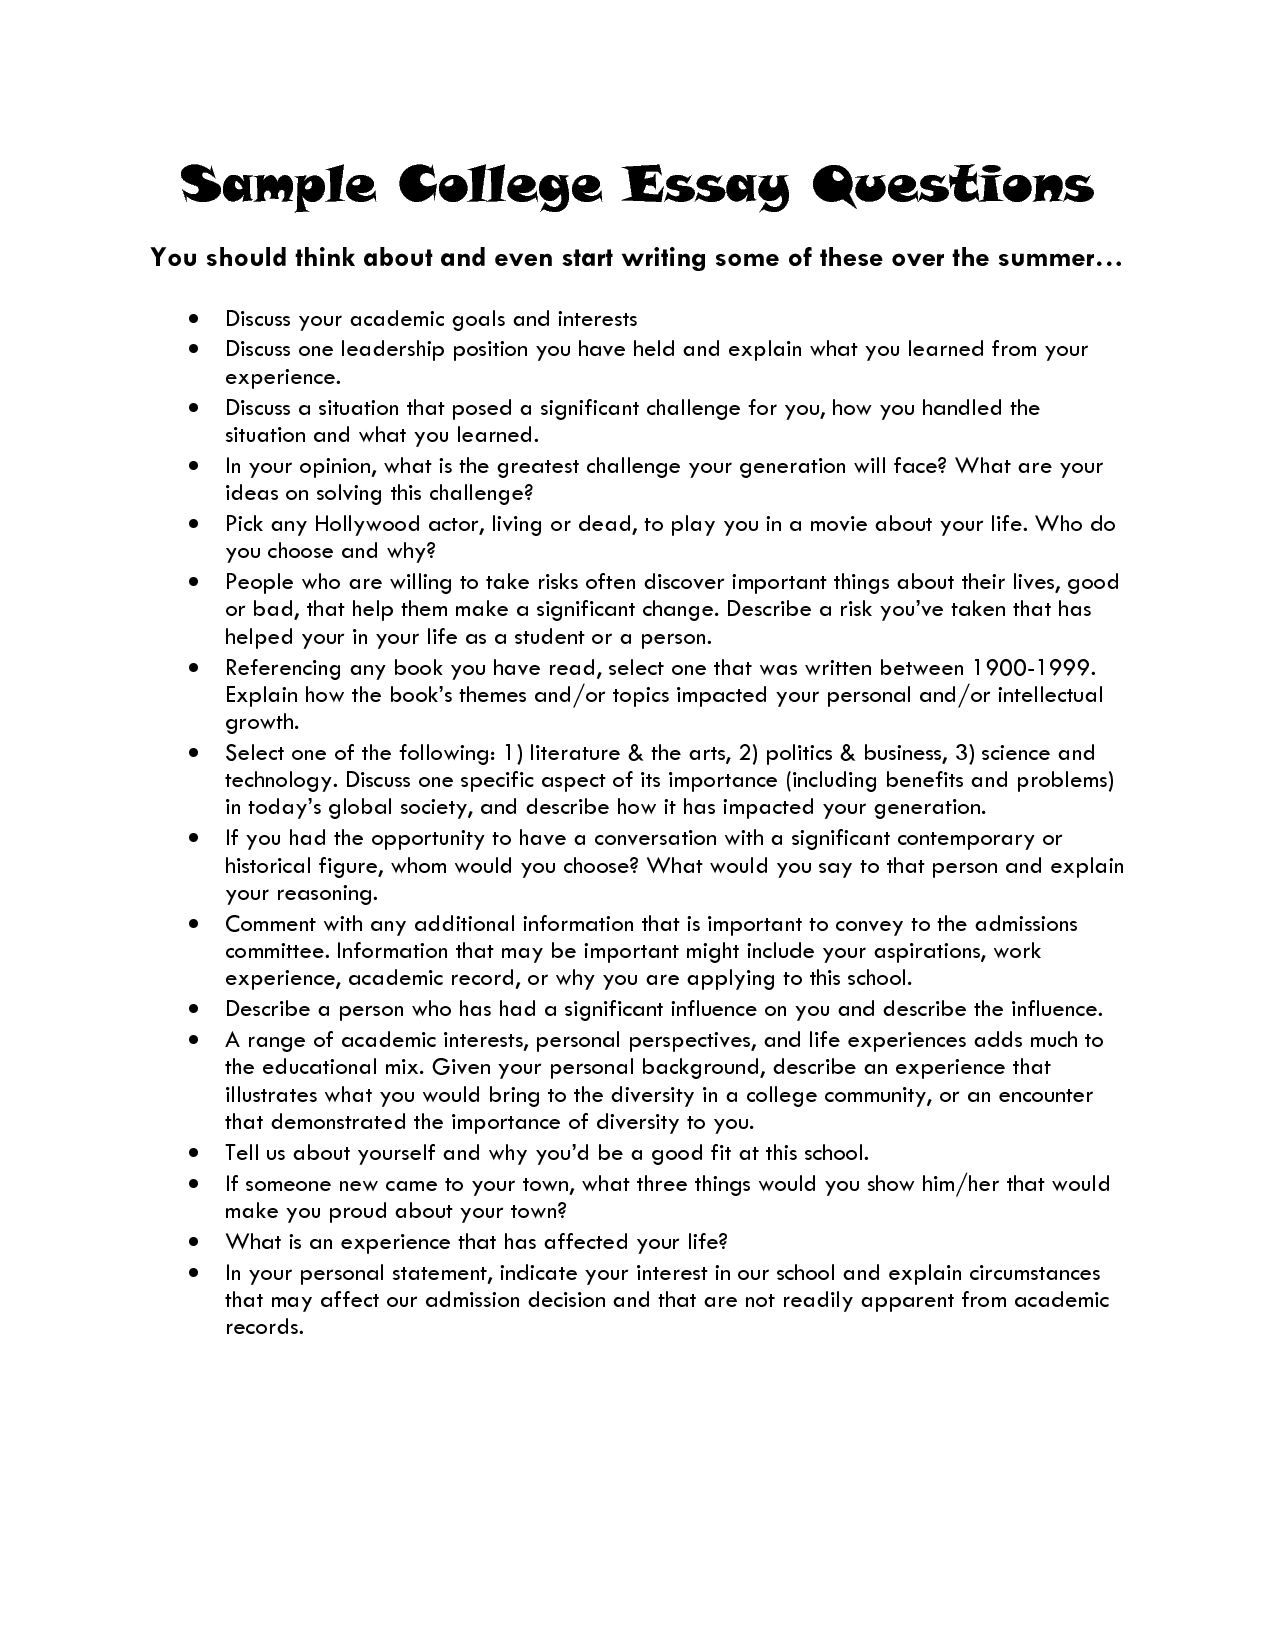 015 Essay Example Academic Goals Sample College Questions L Virginia Tech Imposing Prompts How To Answer 2017 Full